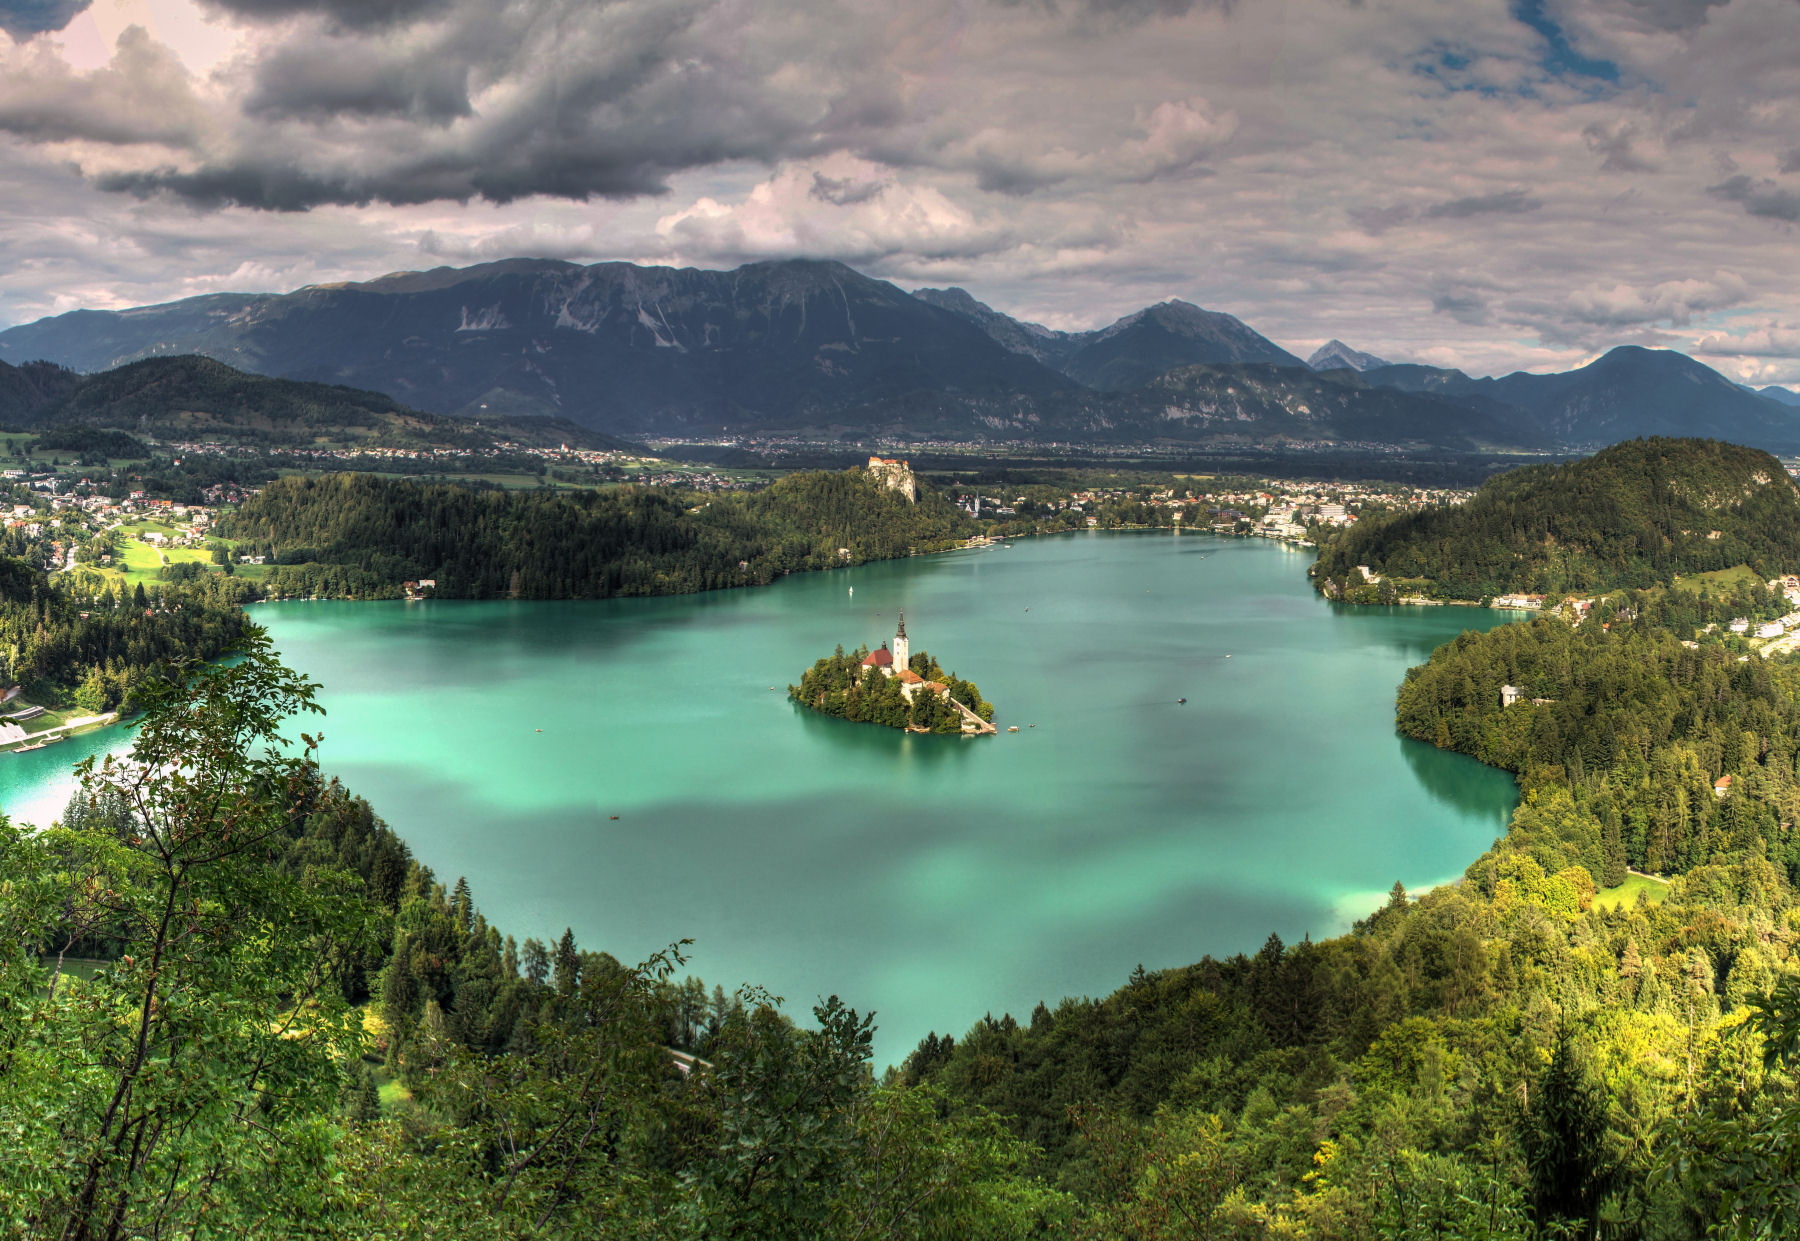 30 Beautiful Lake Bled Photos To Inspire You To Visit Slovenia